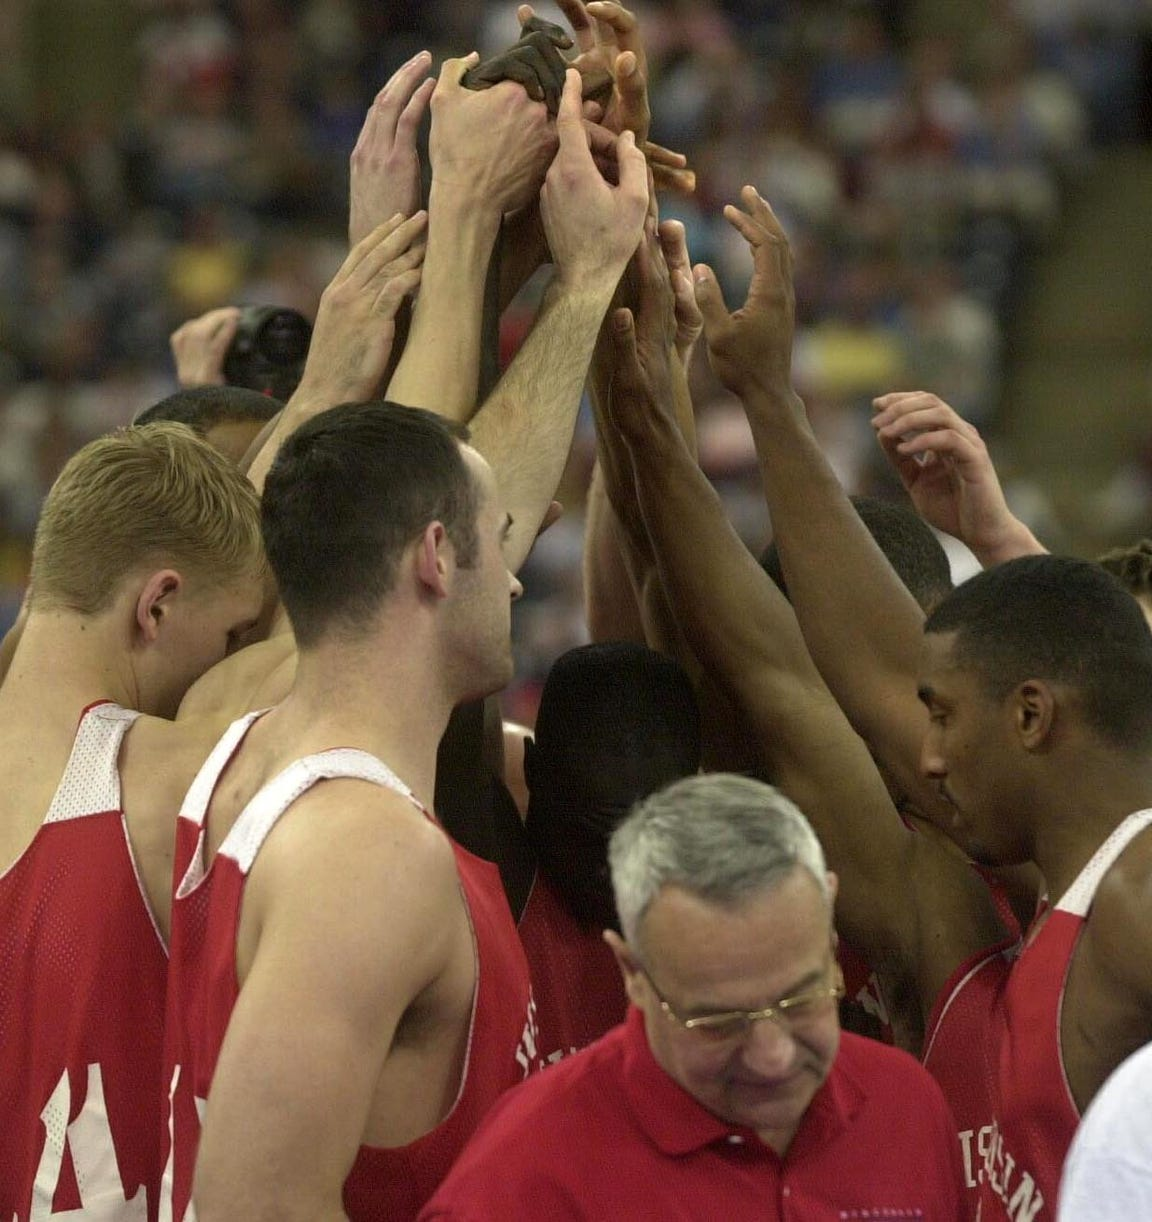 Dick Bennett leaves the huddle as the players unite with raised hands clenched together after their practice ended at the RCA Dome during the 2000 Final Four.